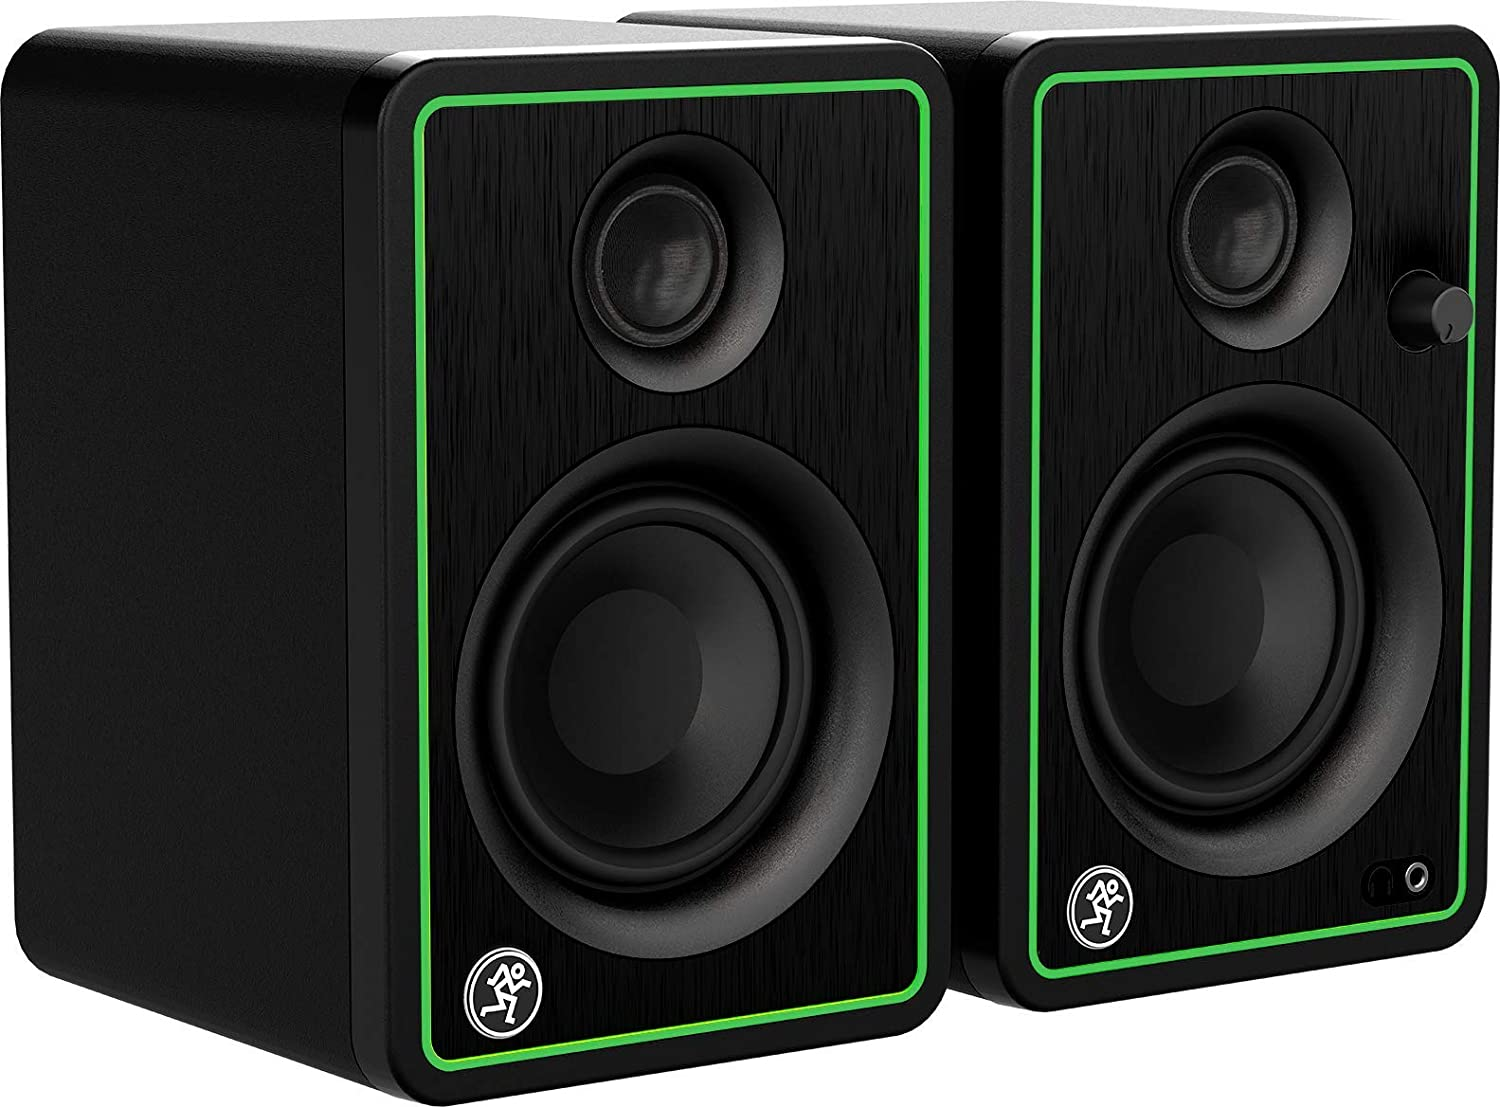 Amazon.com: Mackie CR-X Series, 3-Inch Multimedia Monitors with  Professional Studio-Quality Sound and Bluetooth - Pair (CR3-XBT): Musical  Instruments